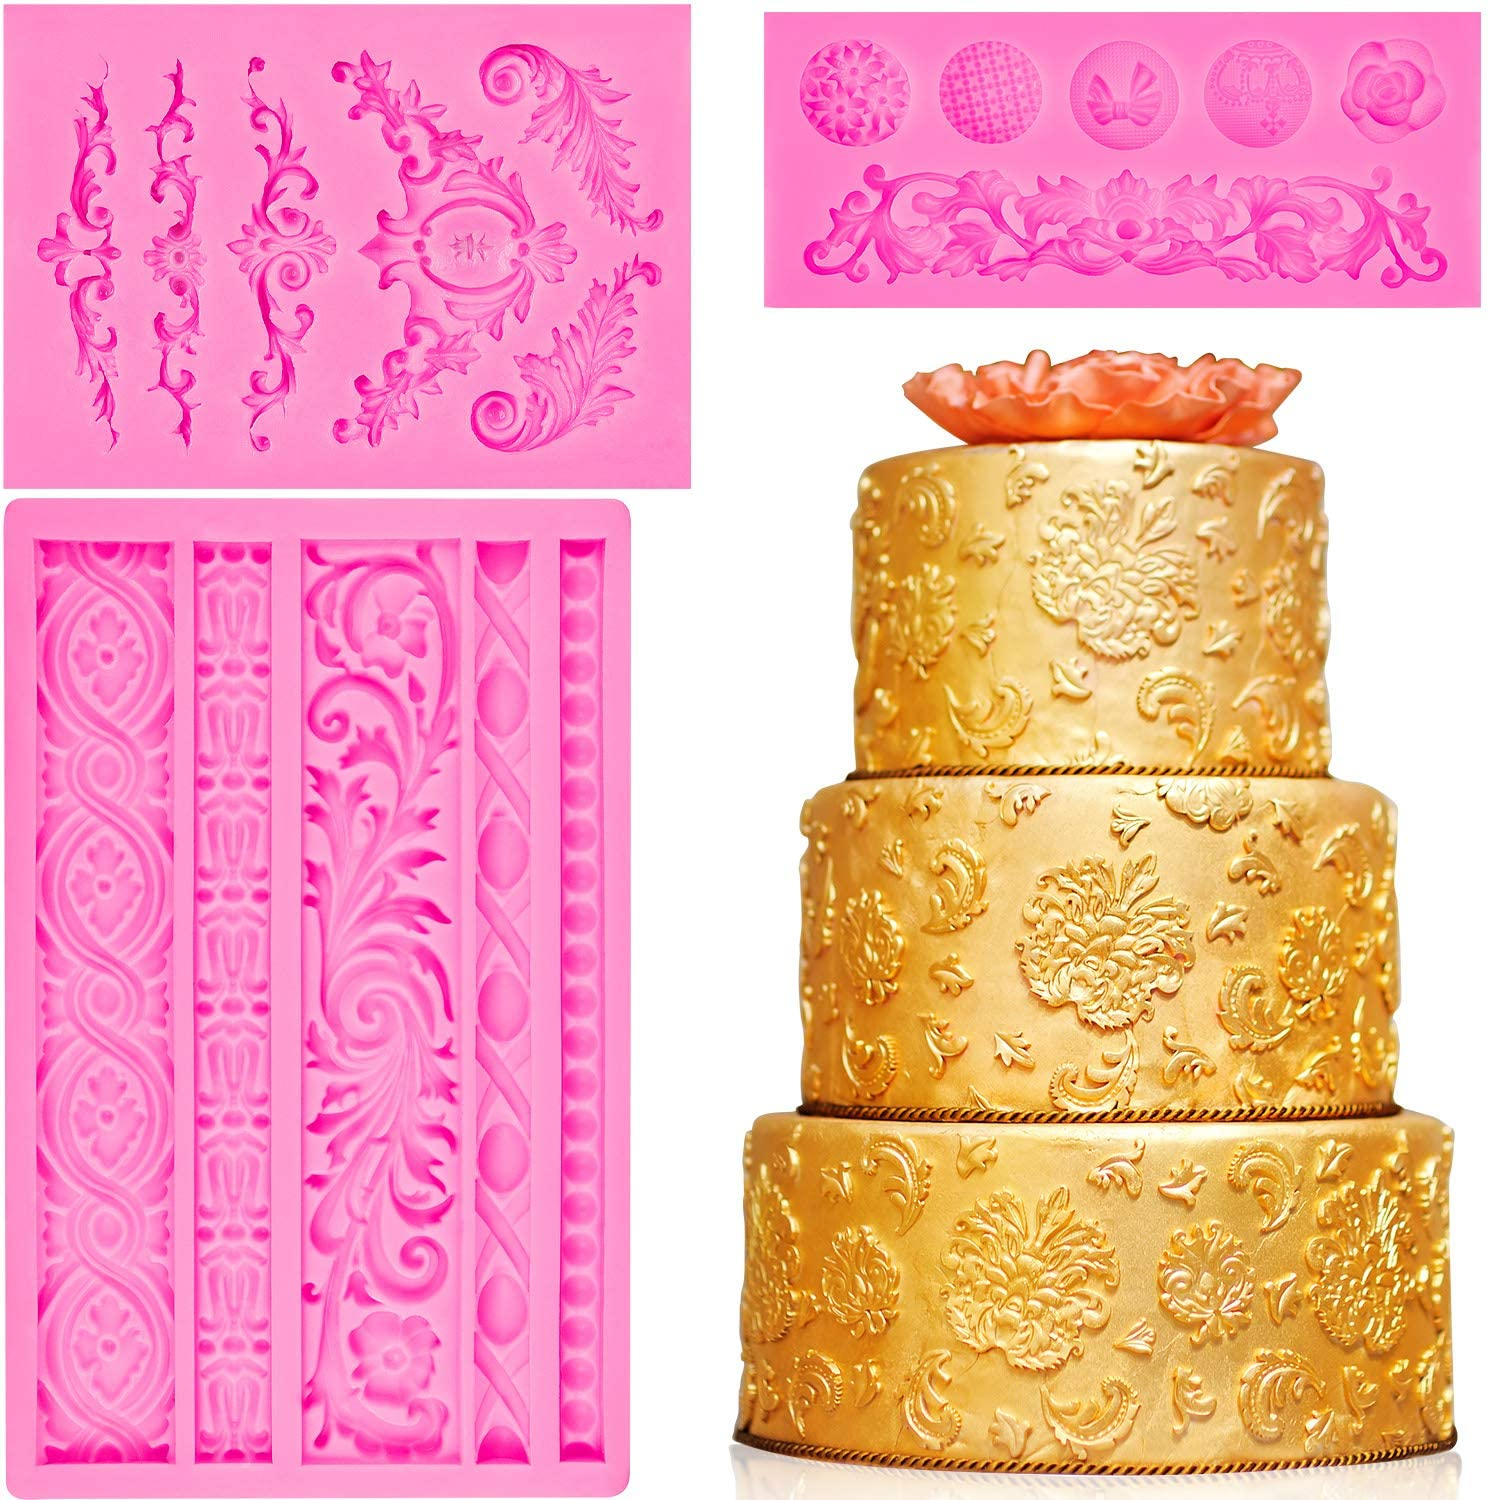 3 Pieces Baroque Fondant Mold Scroll Border Lace Molds Curlicues Fondant Silicone Molds for DIY Baking Cake Candy Decoration, Polymer Clay, Sugar Craft